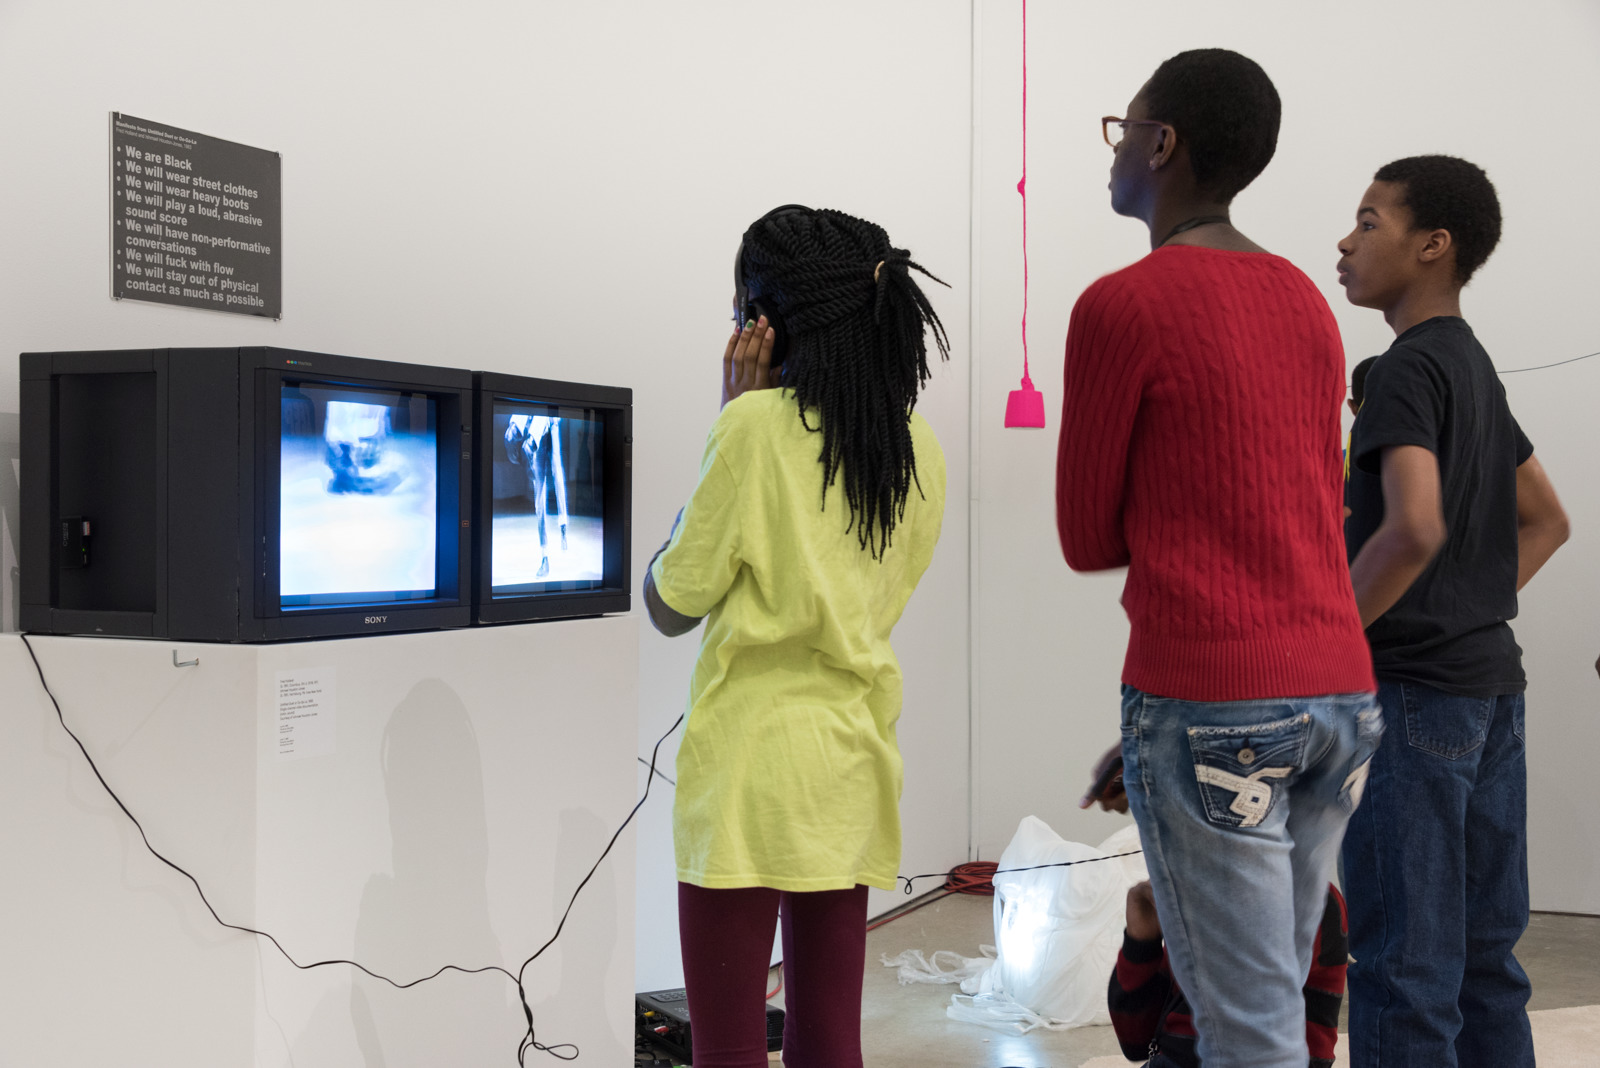 Installation of Fred Holland and Ishmael Houston-Jones footage of  Untitled Duet  or  Oo-Ga-La  (1983) on display as a part of  ENDLESS SHOUT: counts orchestrate, a meadow (or weekly practice with breath)  by taisha paggett at ICA Philadelphia (photographer unknown)